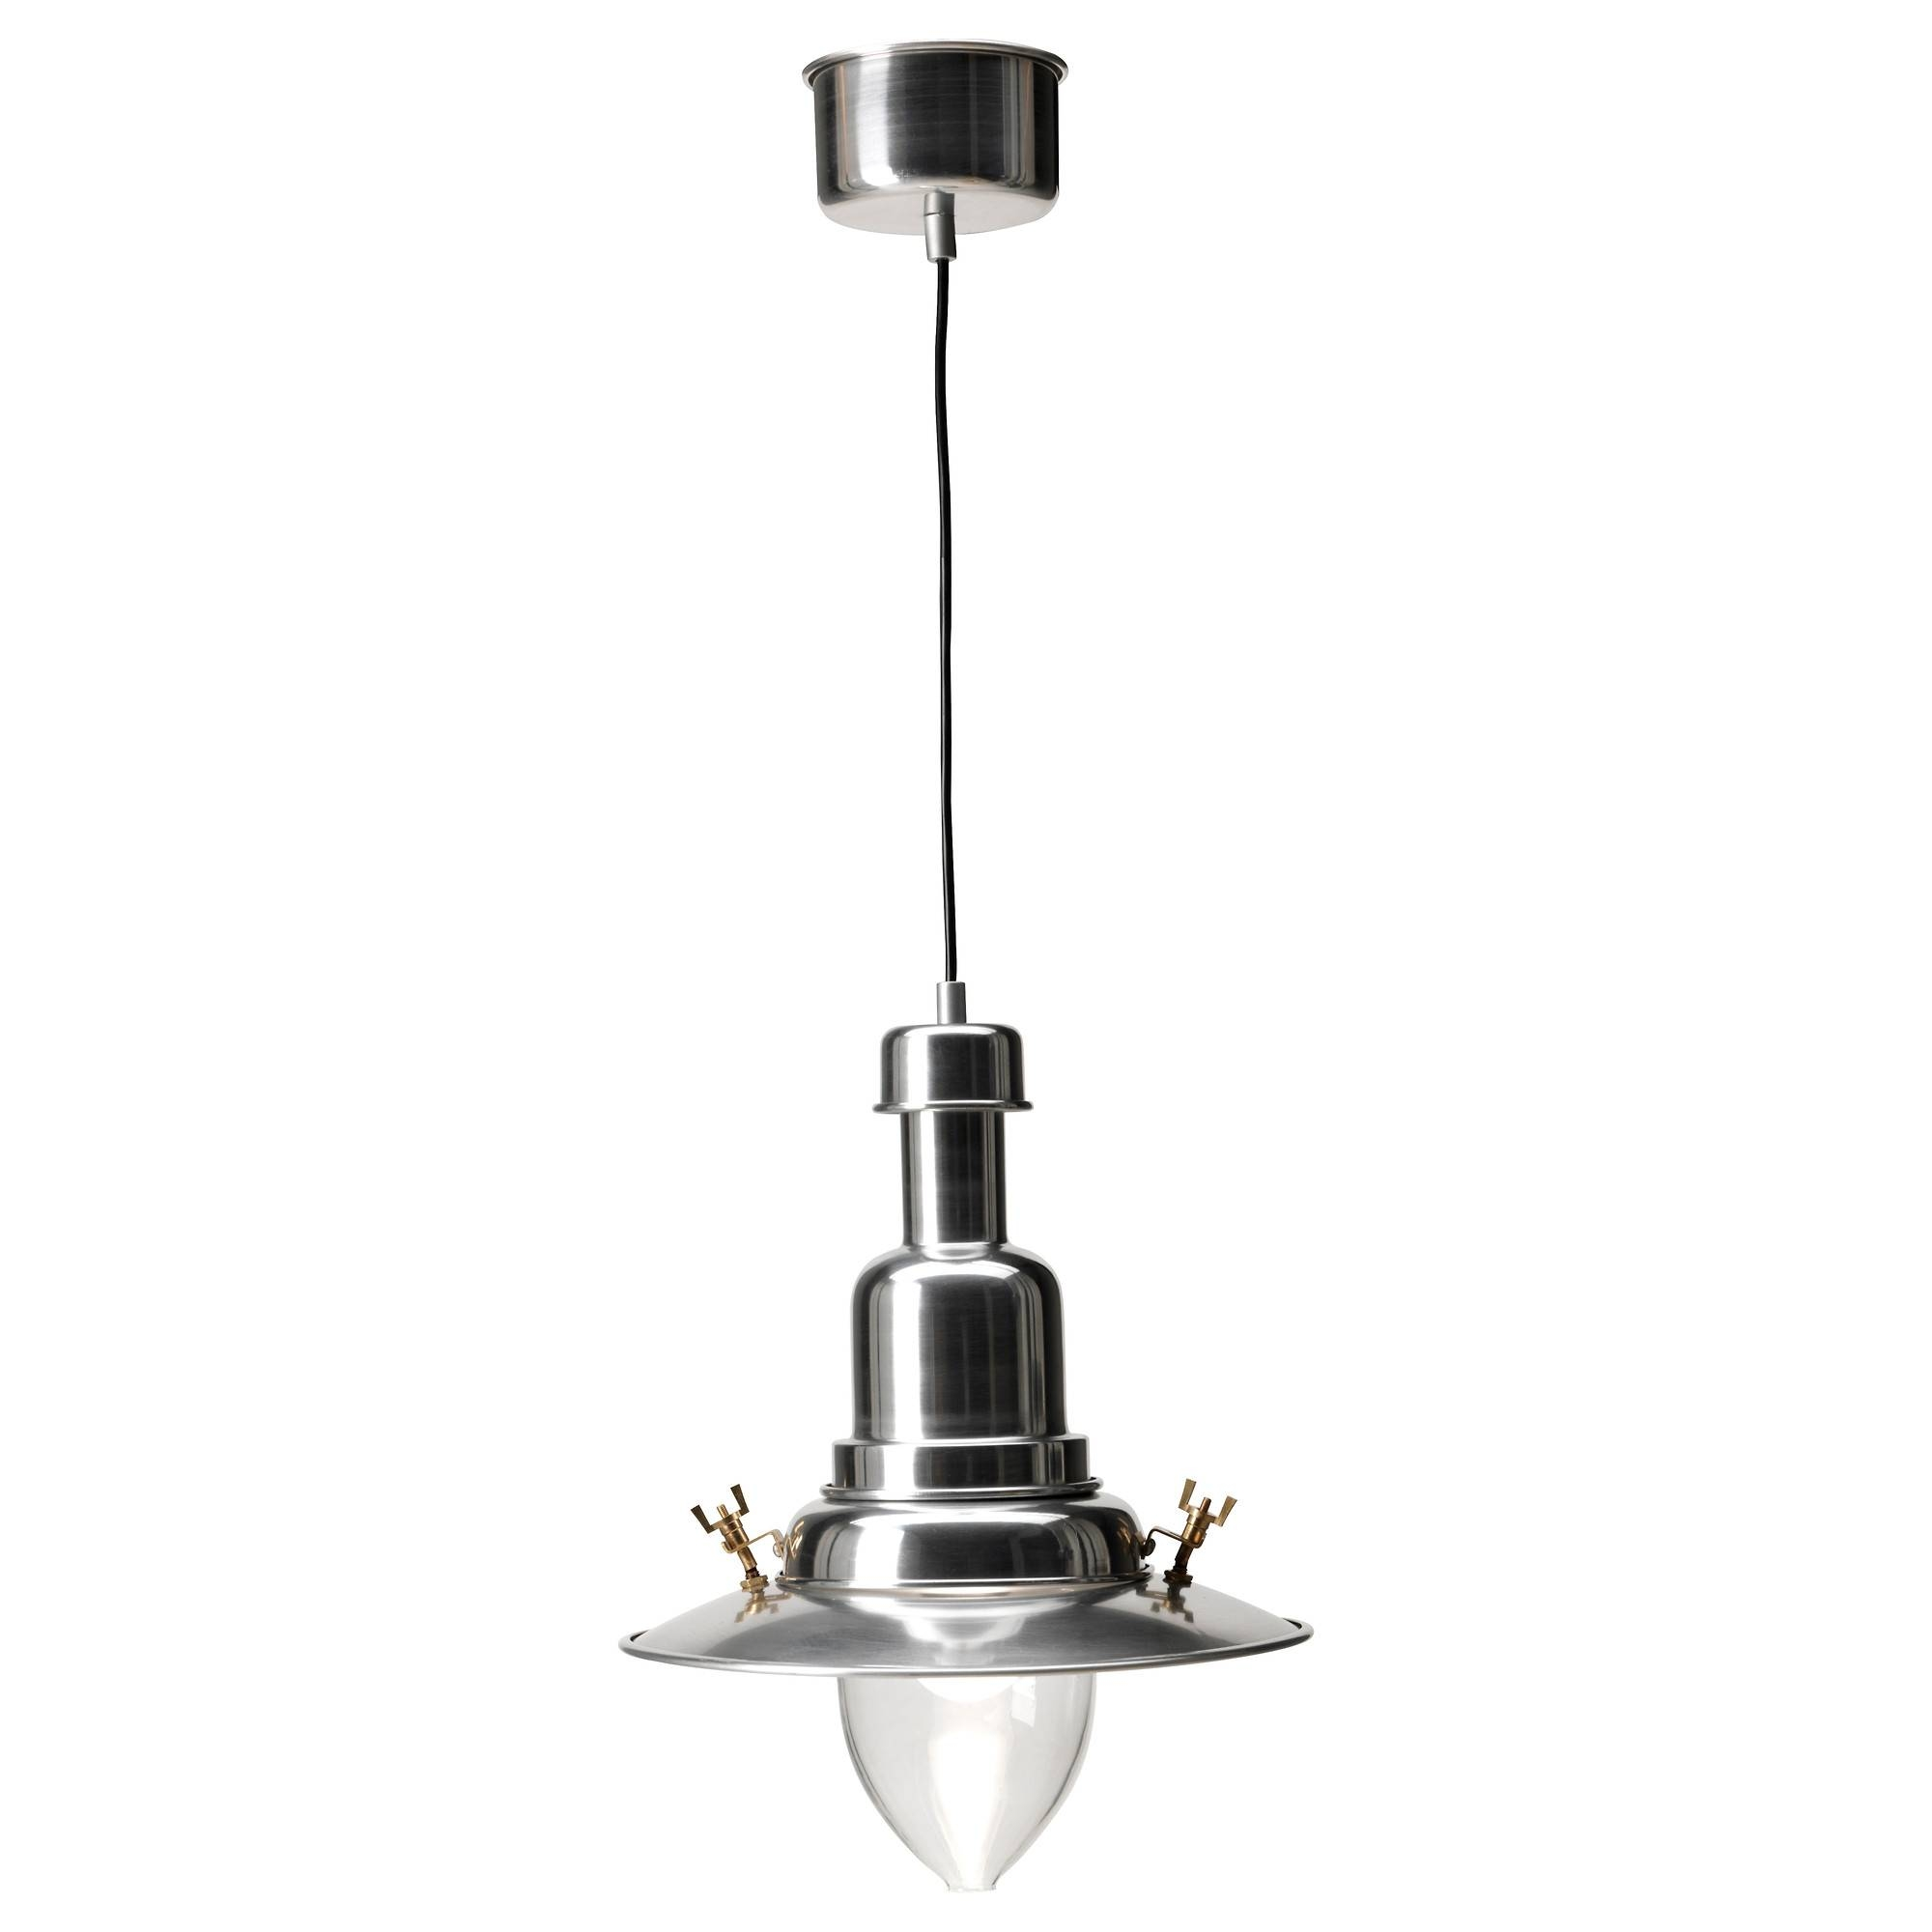 Ceiling Lights & Lamps - Ikea with Ikea Pendant Lights (Image 1 of 15)